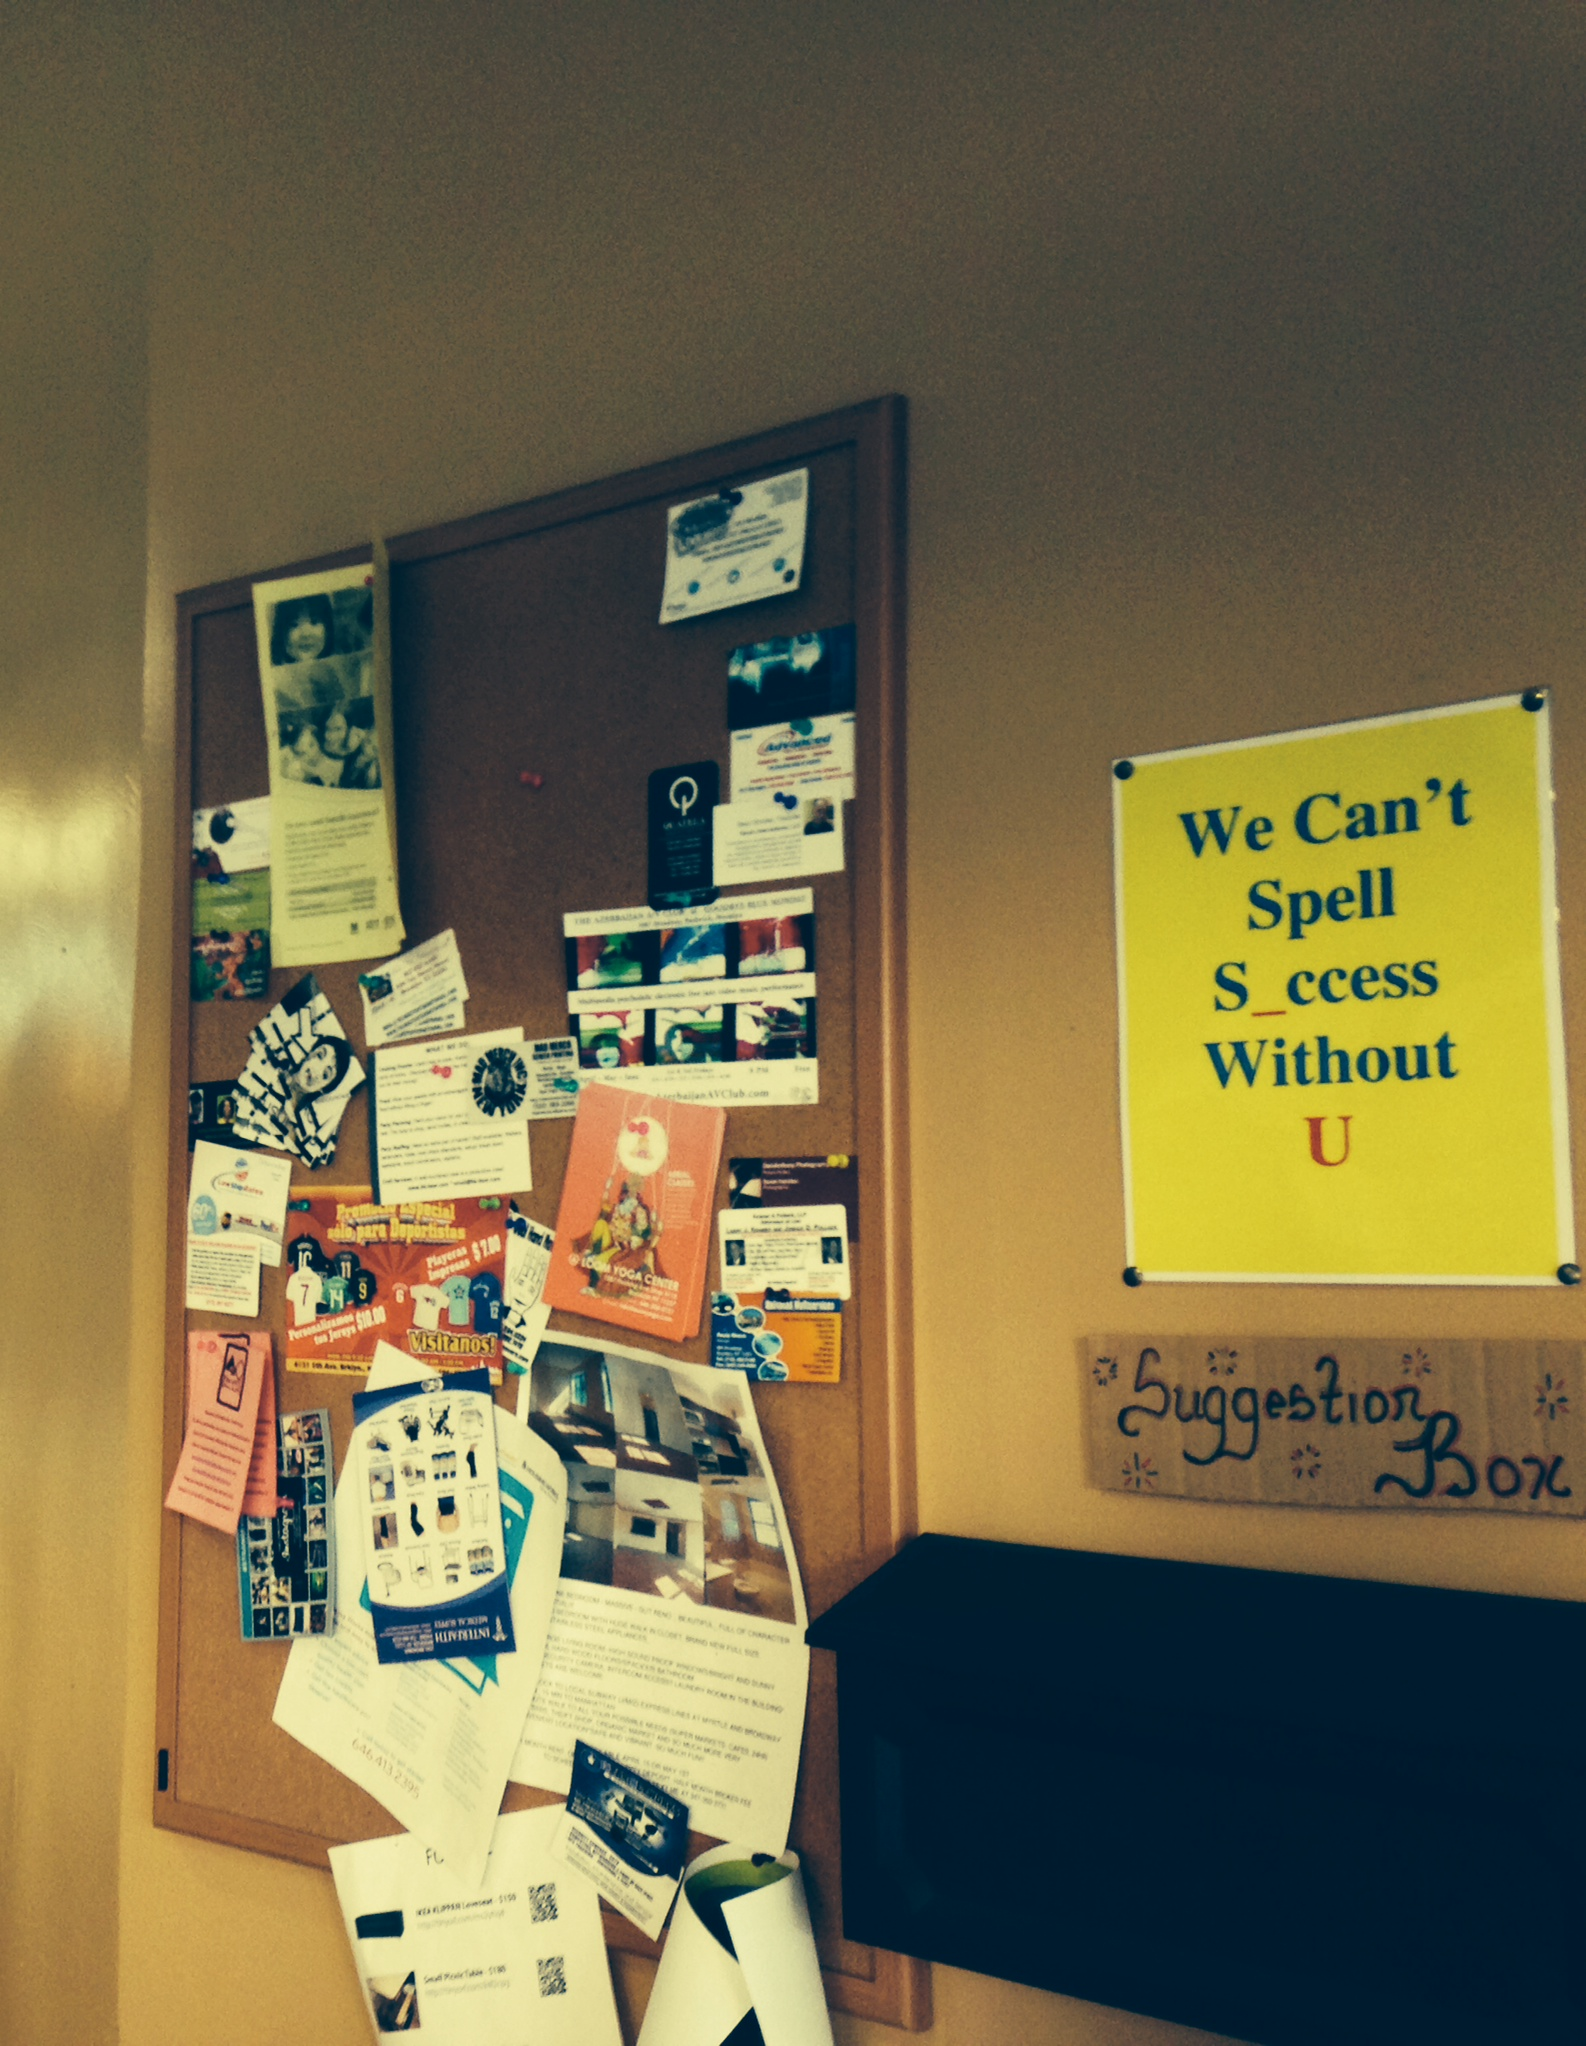 The community interacts with the cafe and with itself via the bulletin board and suggestion box.